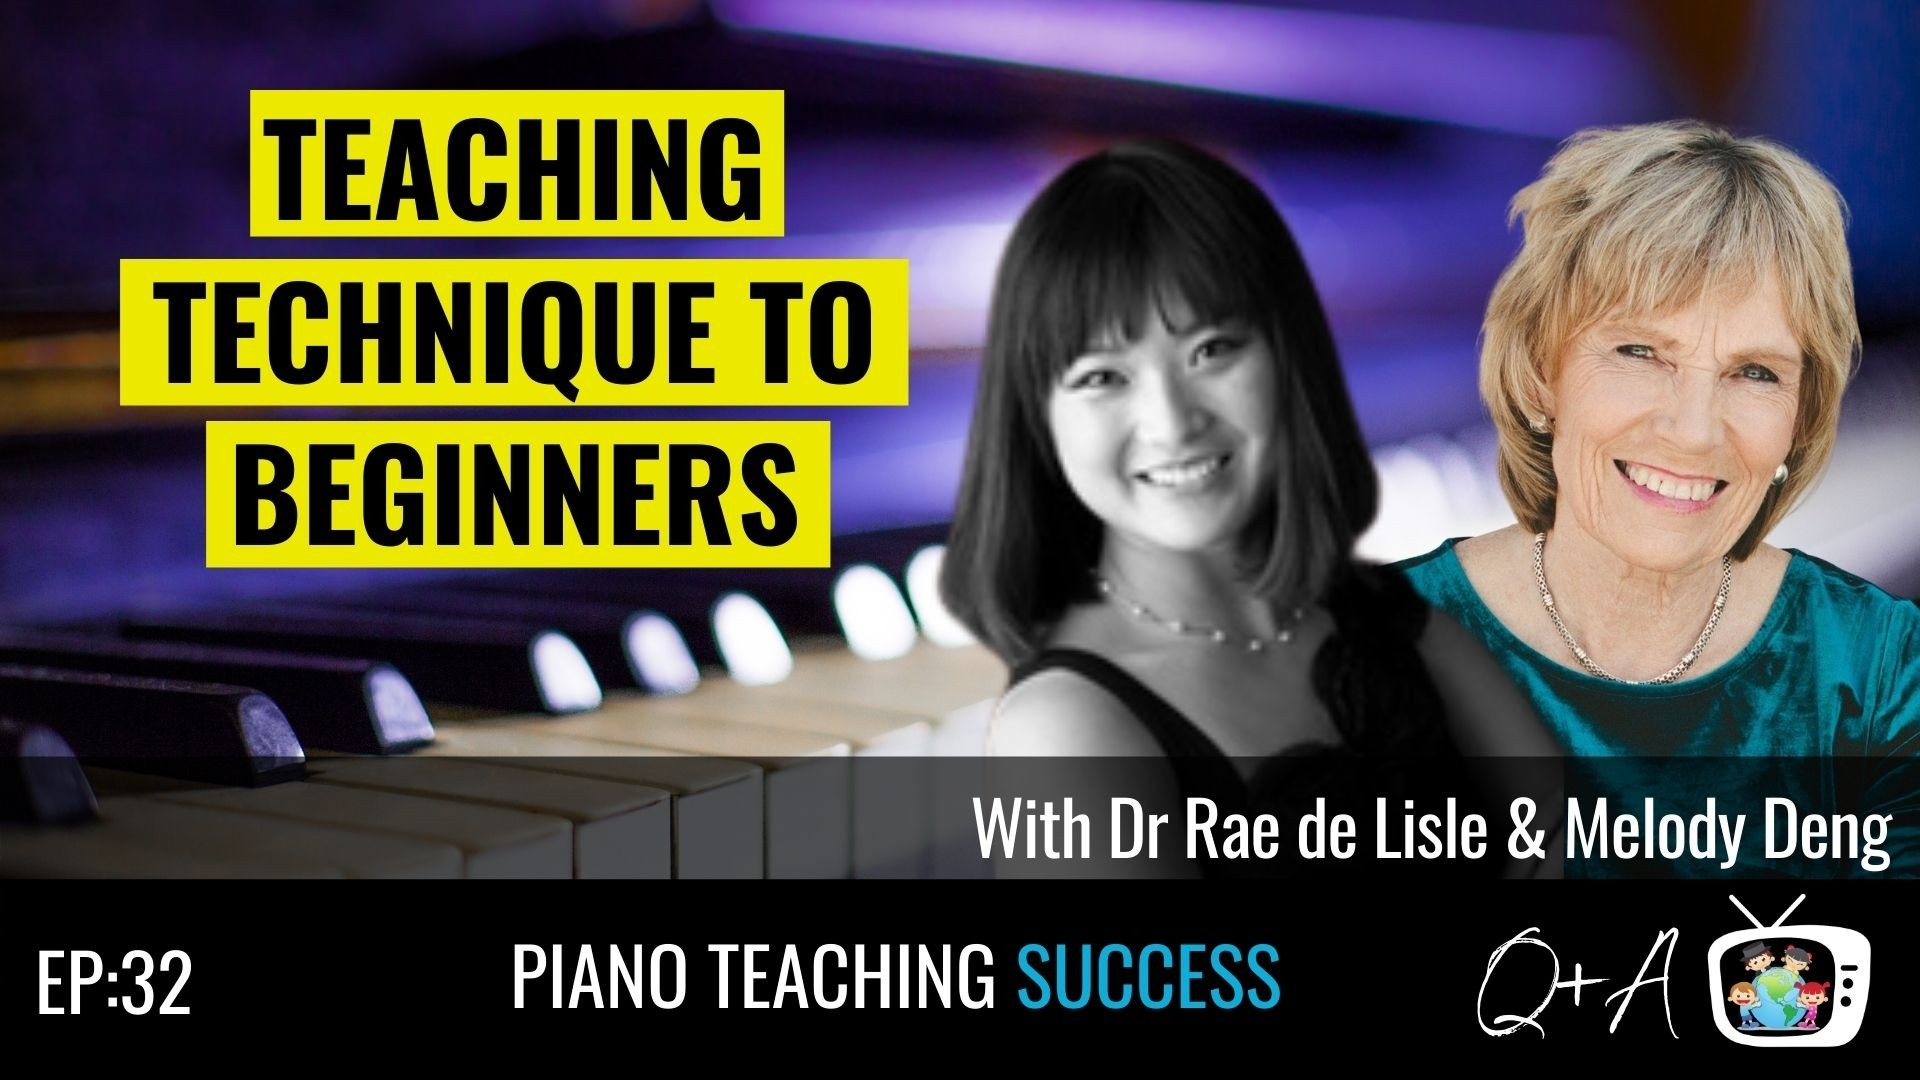 Episode 28 of Piano Teaching Success featuring Gillian Erskine and Paul Myatt.